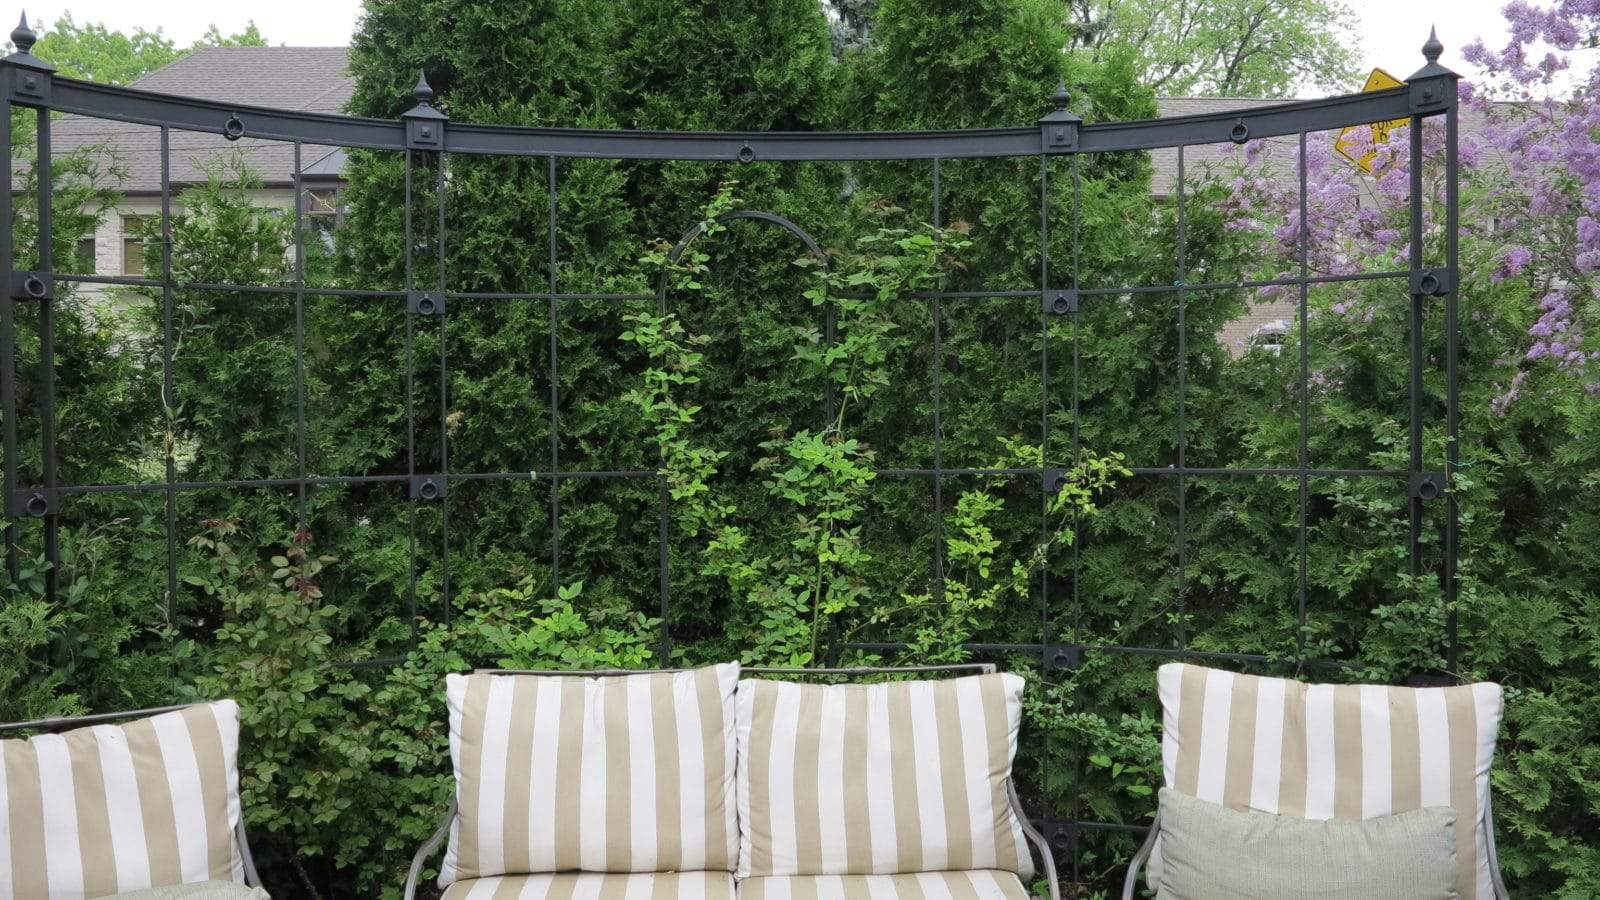 An example of cedars used to screen a seating area, accented with an attractive metal trellis.